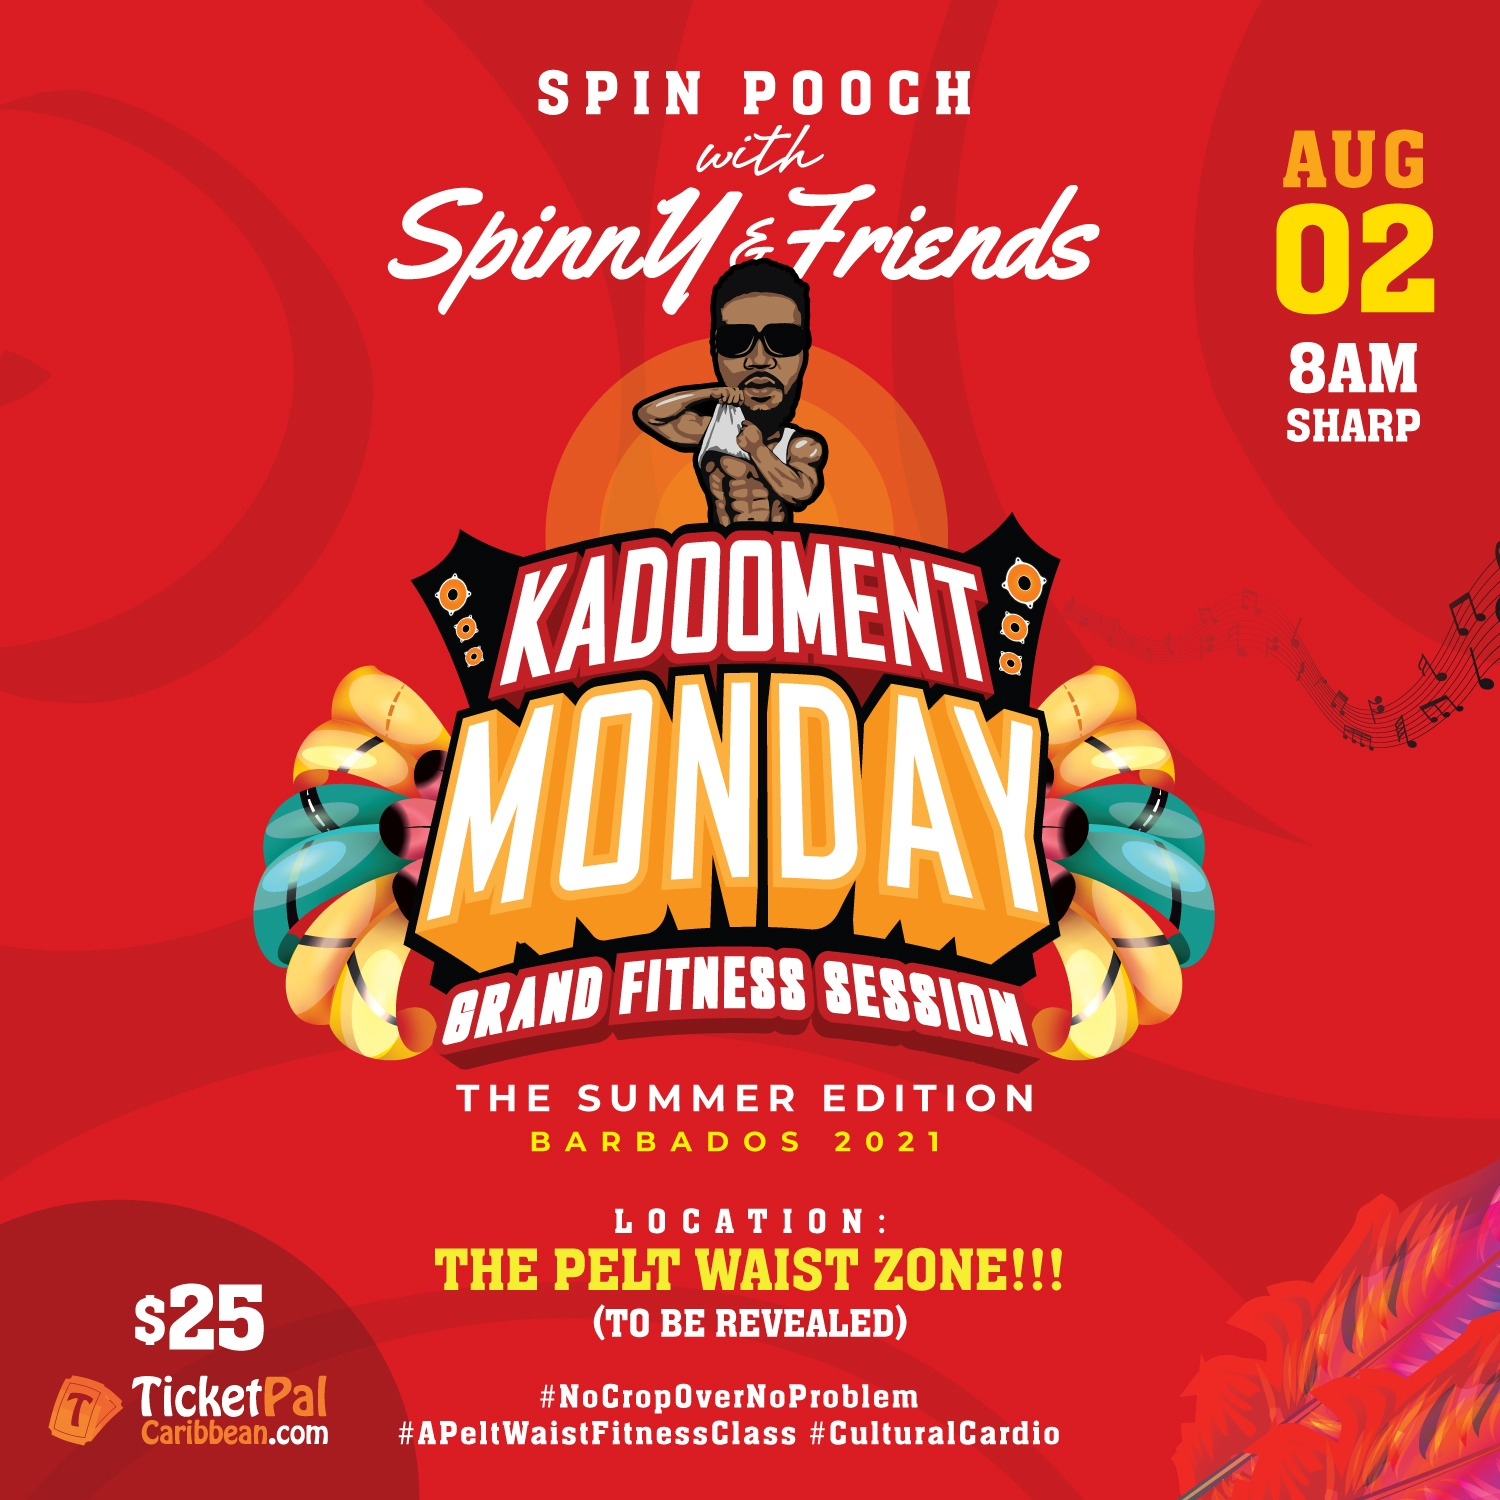 Spin Pooch with Spinny & Friends - Kadooment Monday Grand Fitness Session